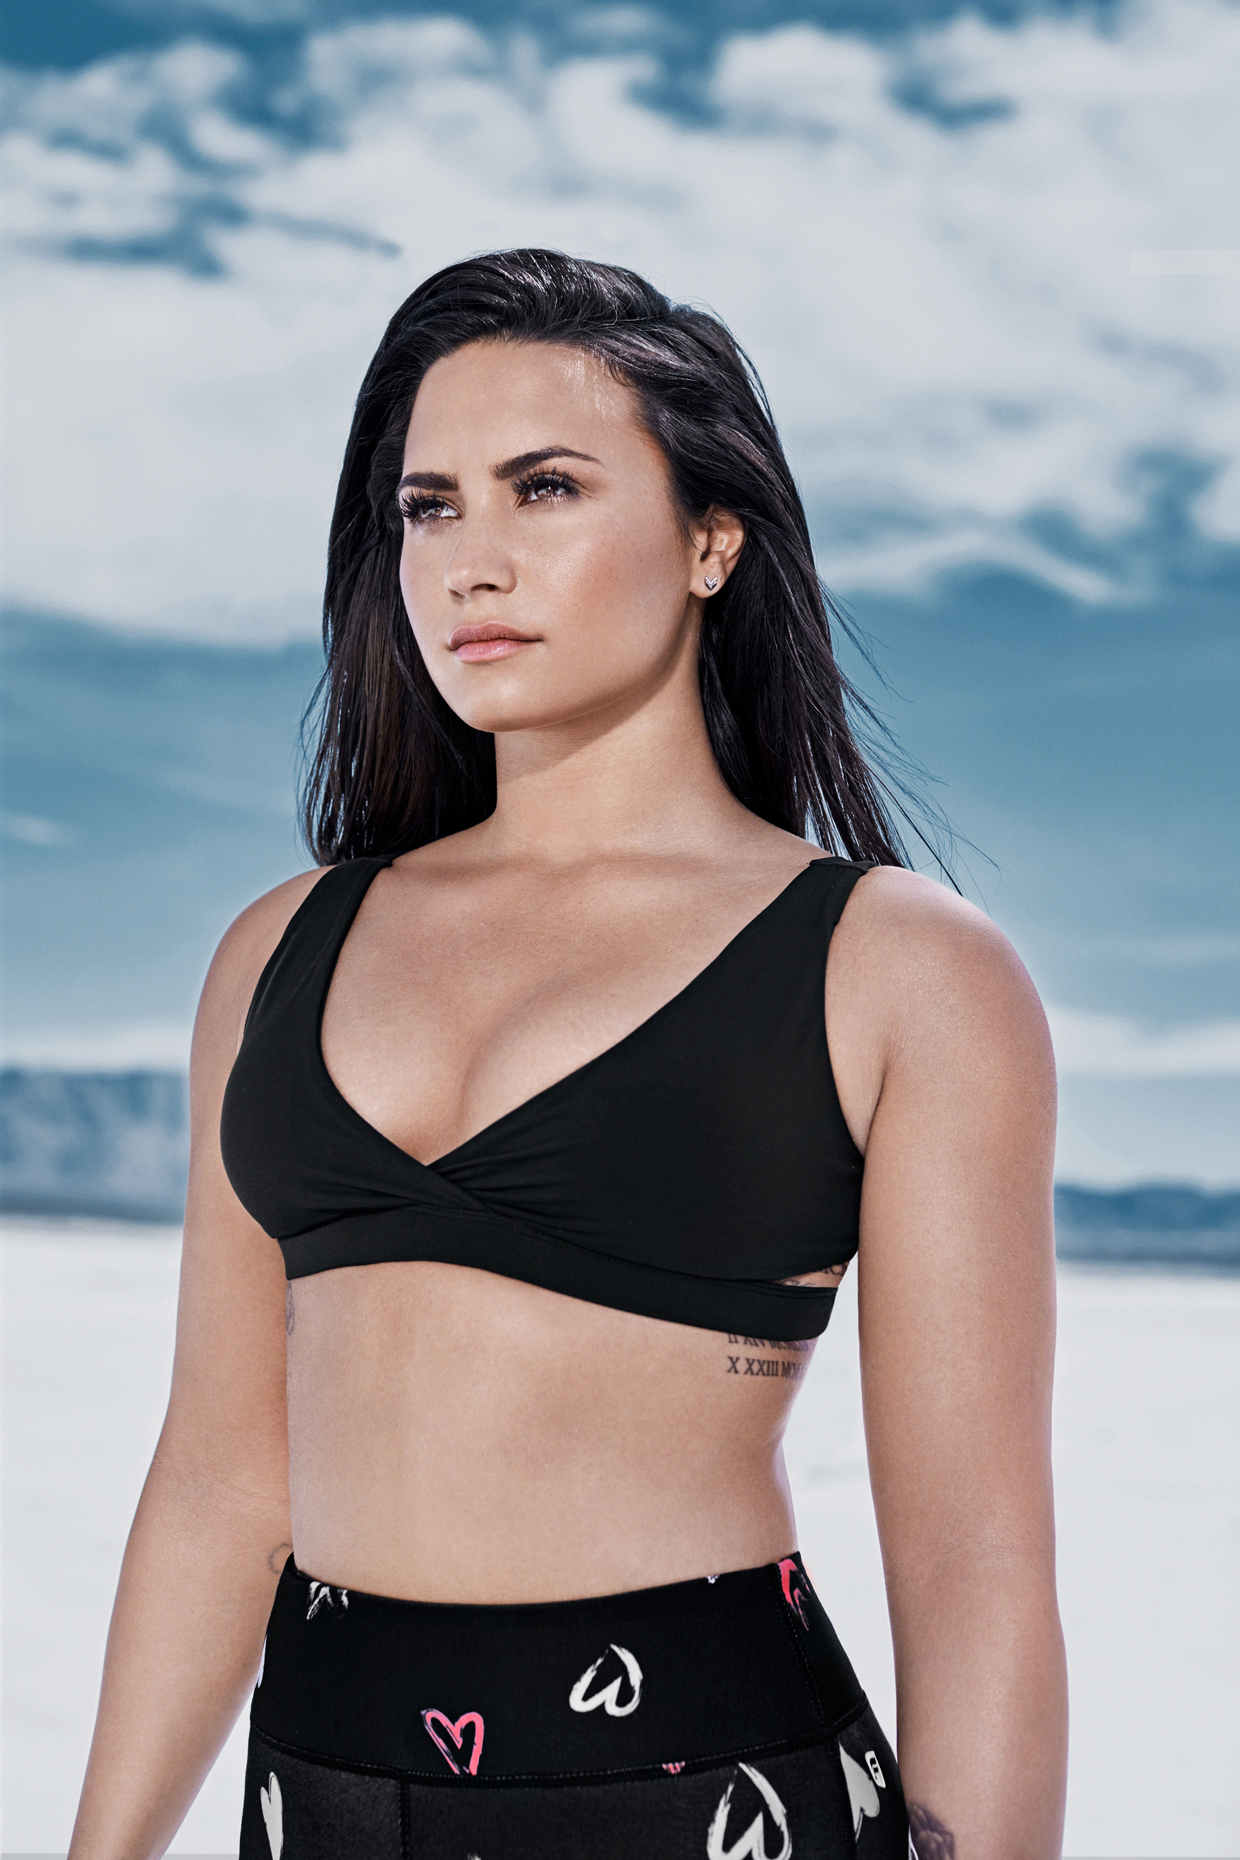 Demi Lovato Hot Bikini Images, Videos and Sexy Pics